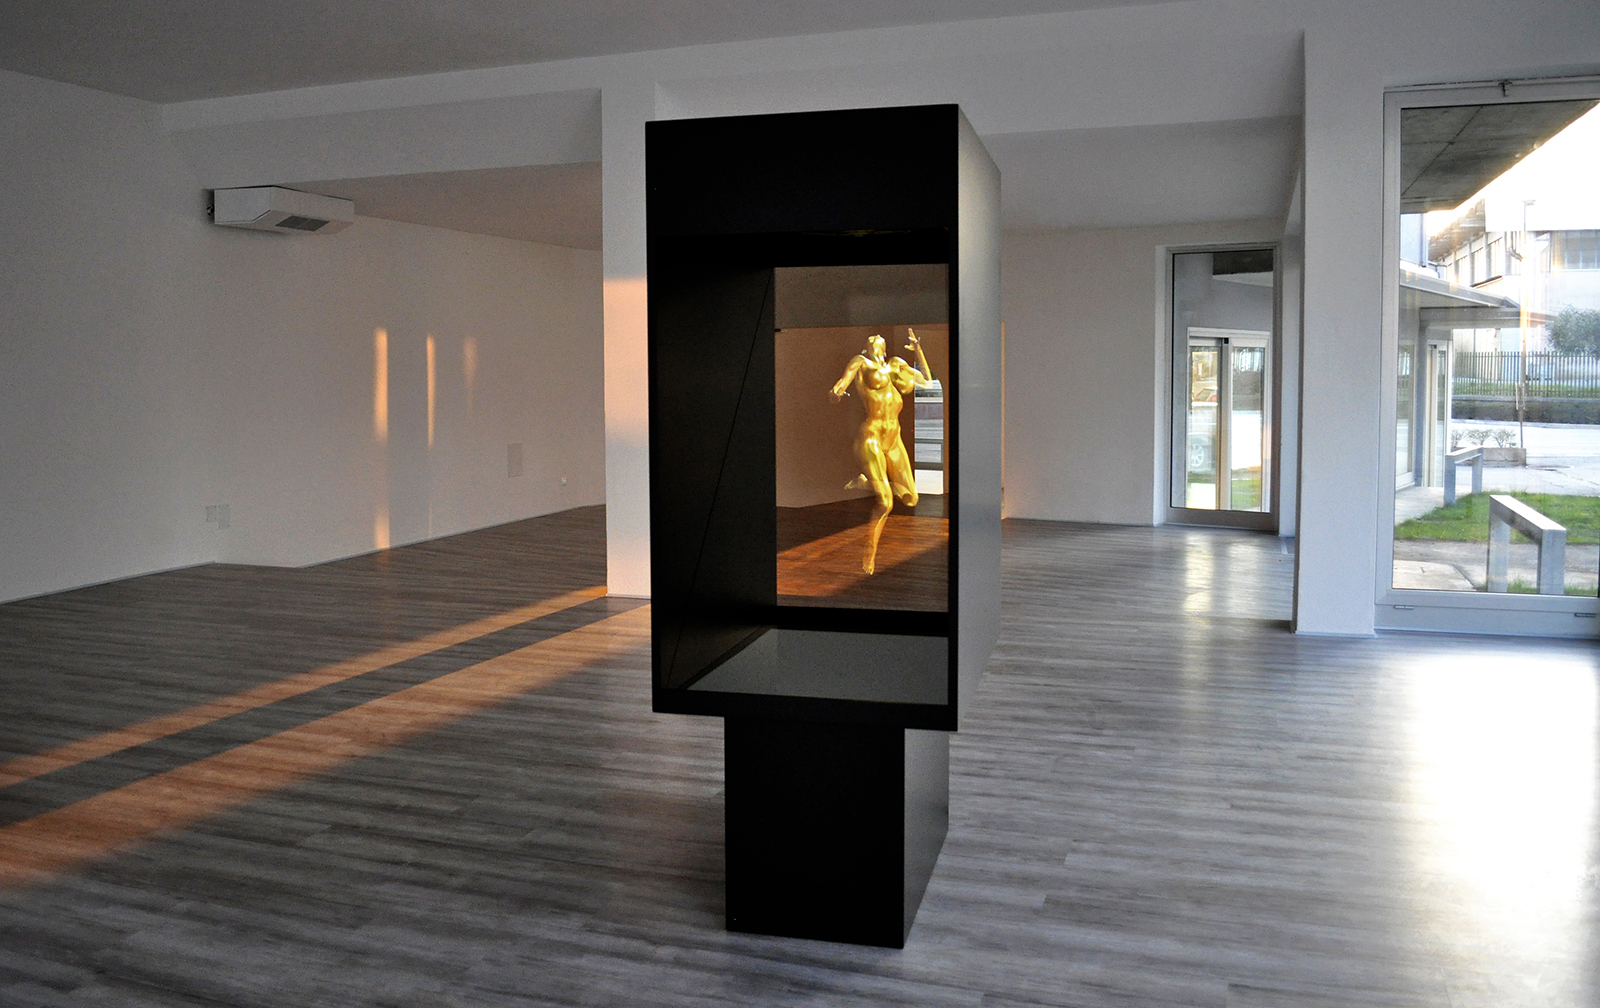 christian zanotto,four dimensions,holotheca,holographic theca,aktor,red stamp art gallery,amsterdam